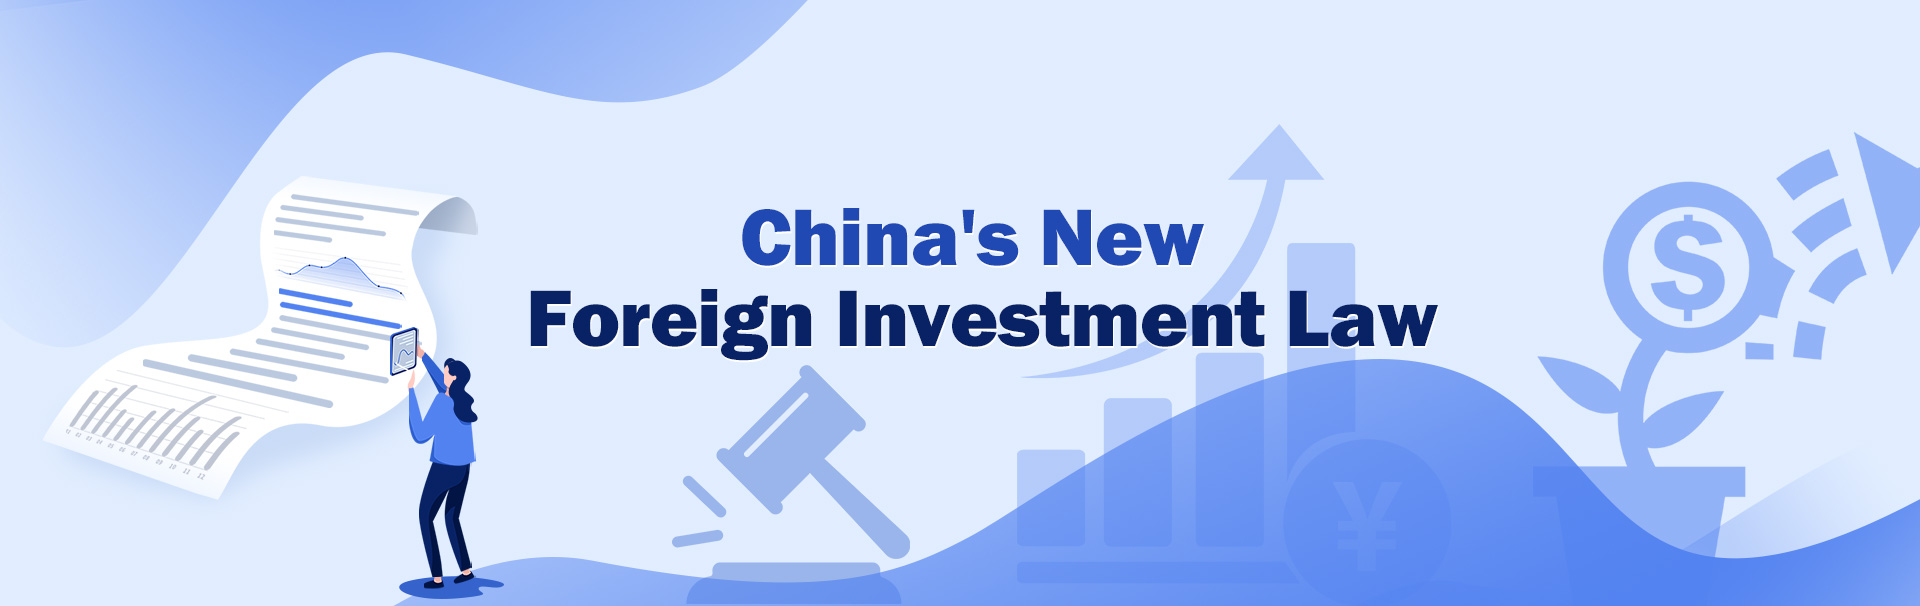 China's Foreign Investment Law | govt.chinadaily.com.cn